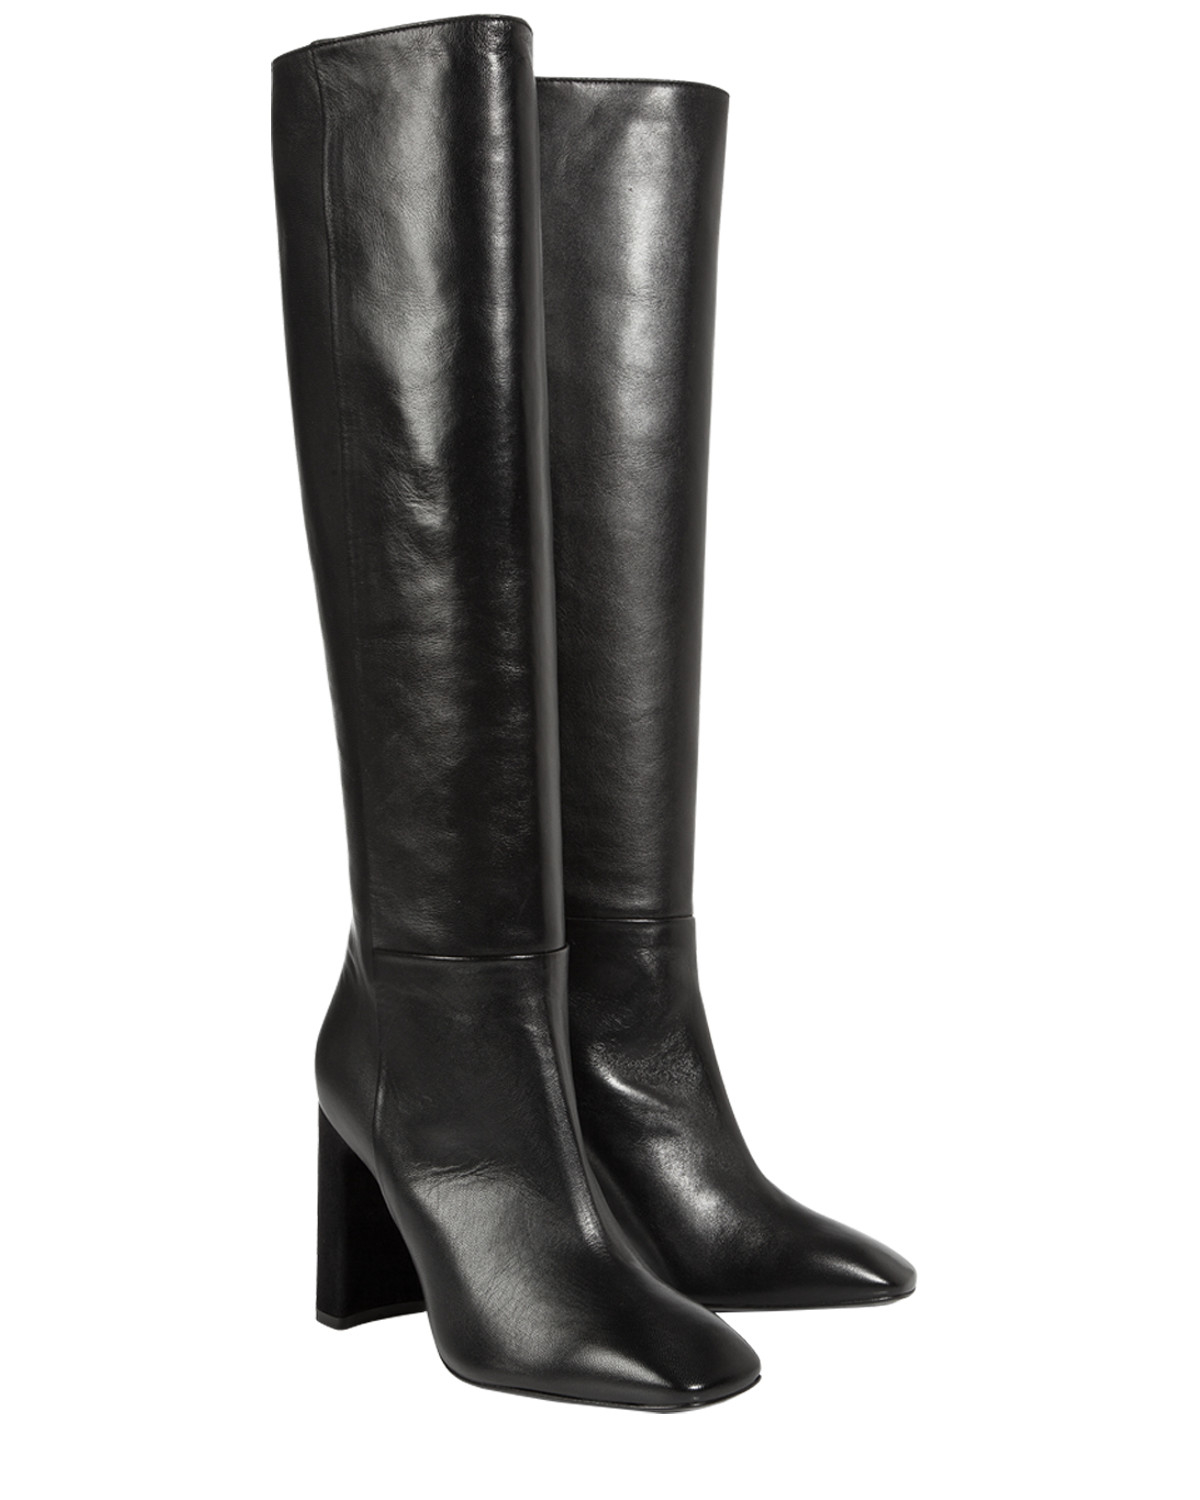 Dorothee schumacher New Obsession Boot 41cm in Black